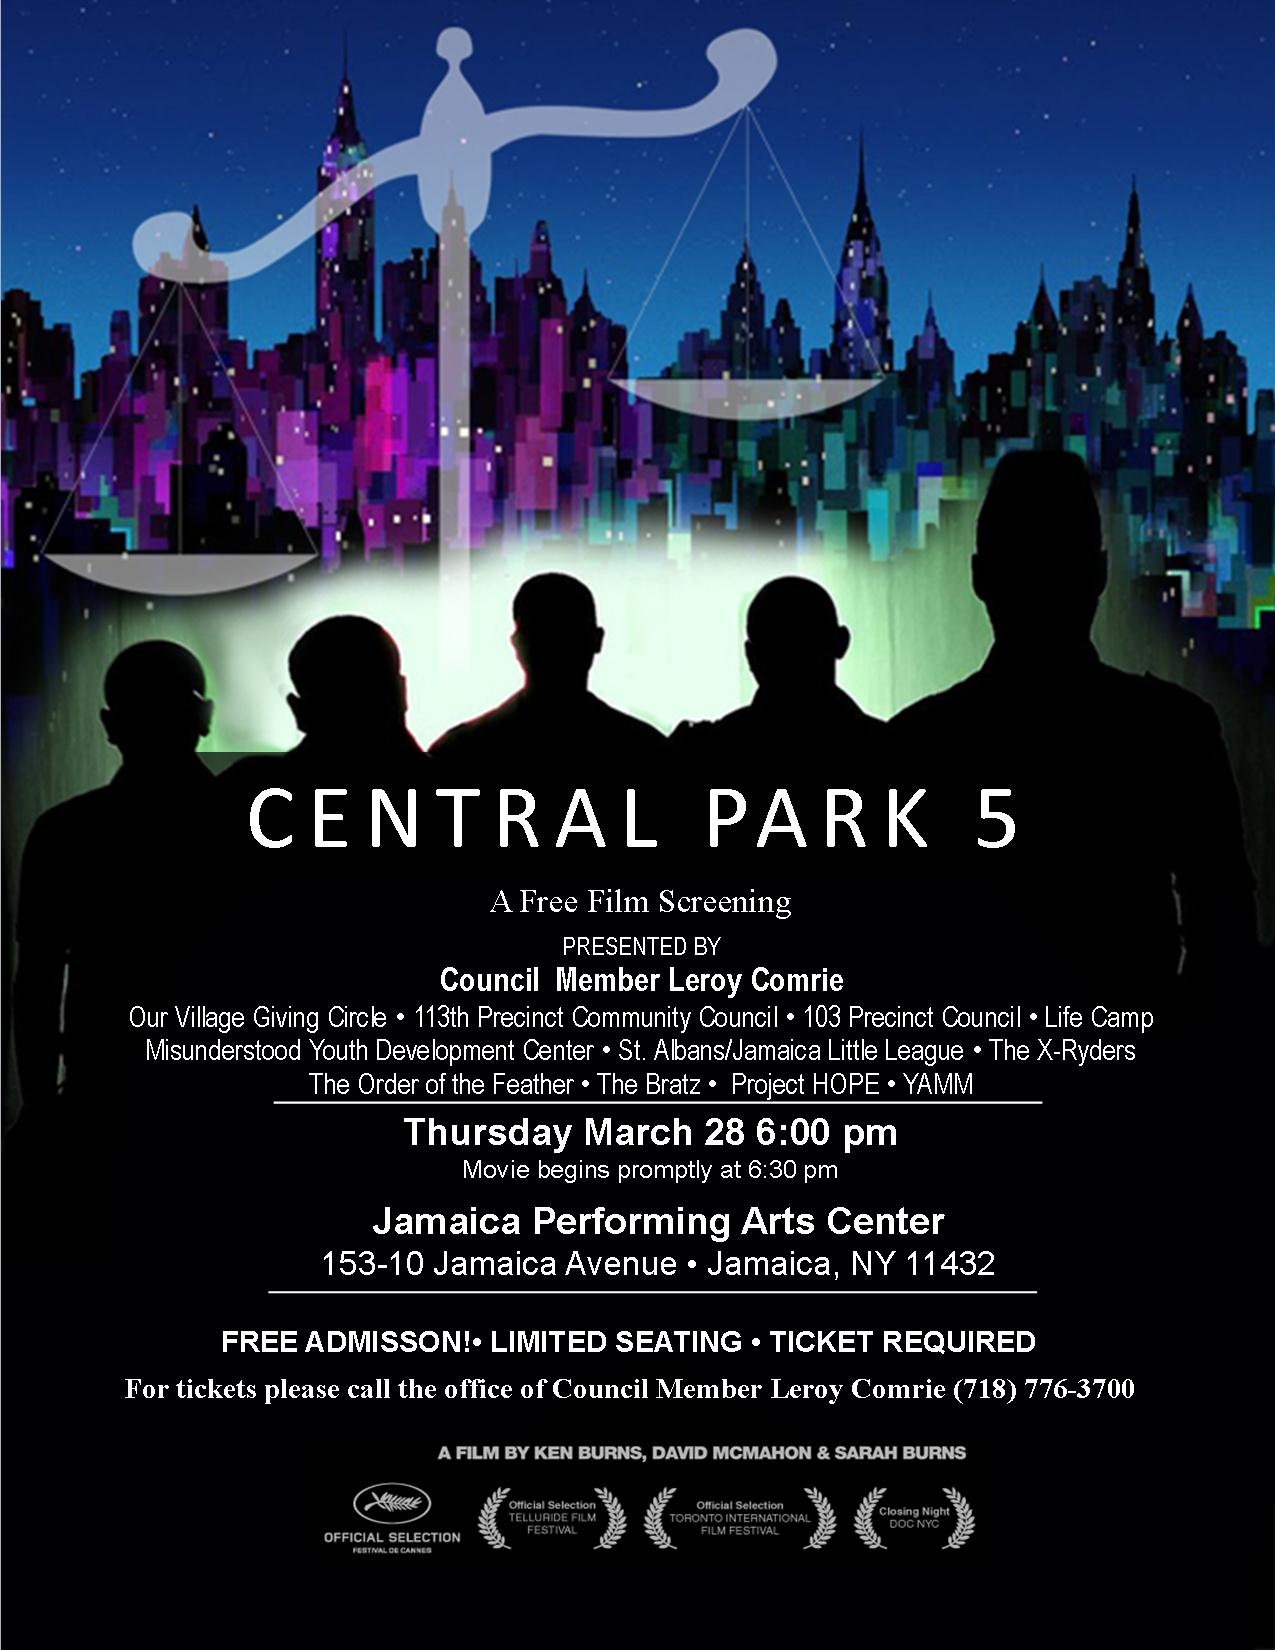 central park five In 1989, five black and latino teenagers from harlem were arrested and later convicted of raping a white woman in new york city's central park they spent between 6 and 13 years in prison before a serial rapist confessed that he alone had committed the crime, leading to their convictions being overturned.